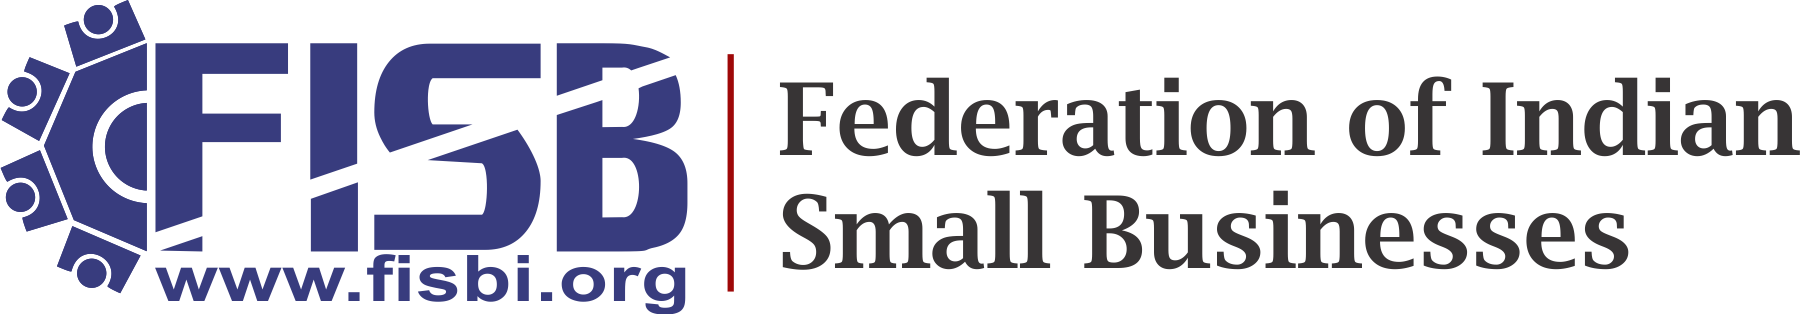 Federation of Indian Small Businesses